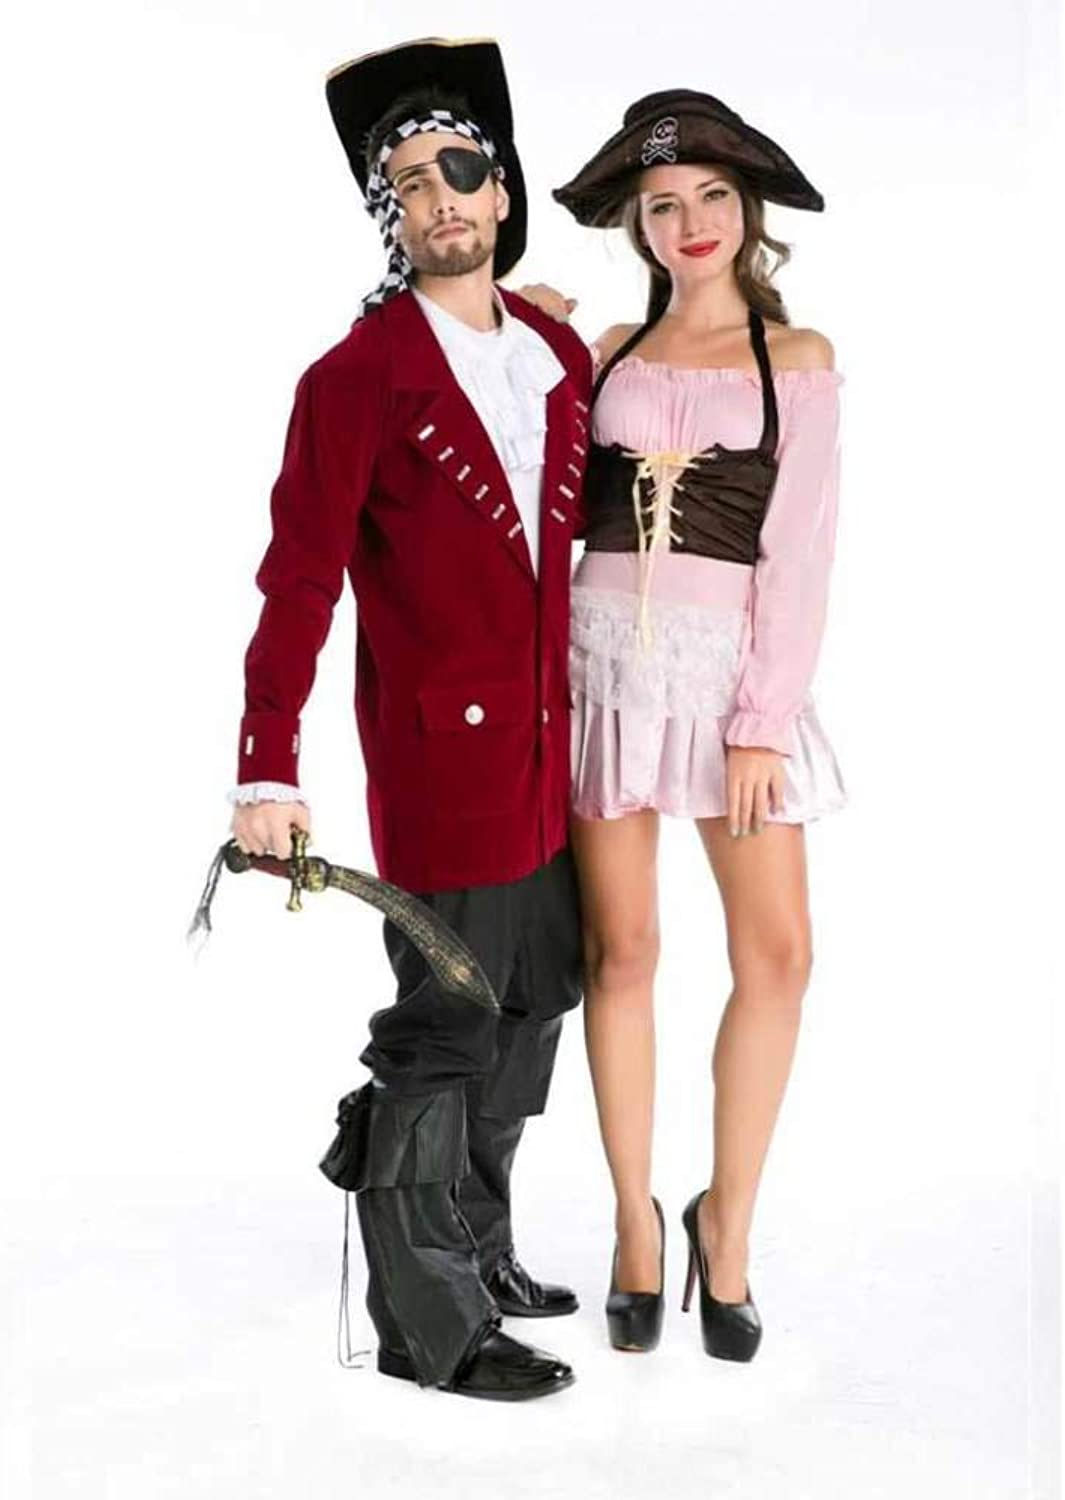 OFZYG Halloween Jack Pirate Outfit Holiday Party Cosplay Role Playing Stage Performance Pirate Captain Costume